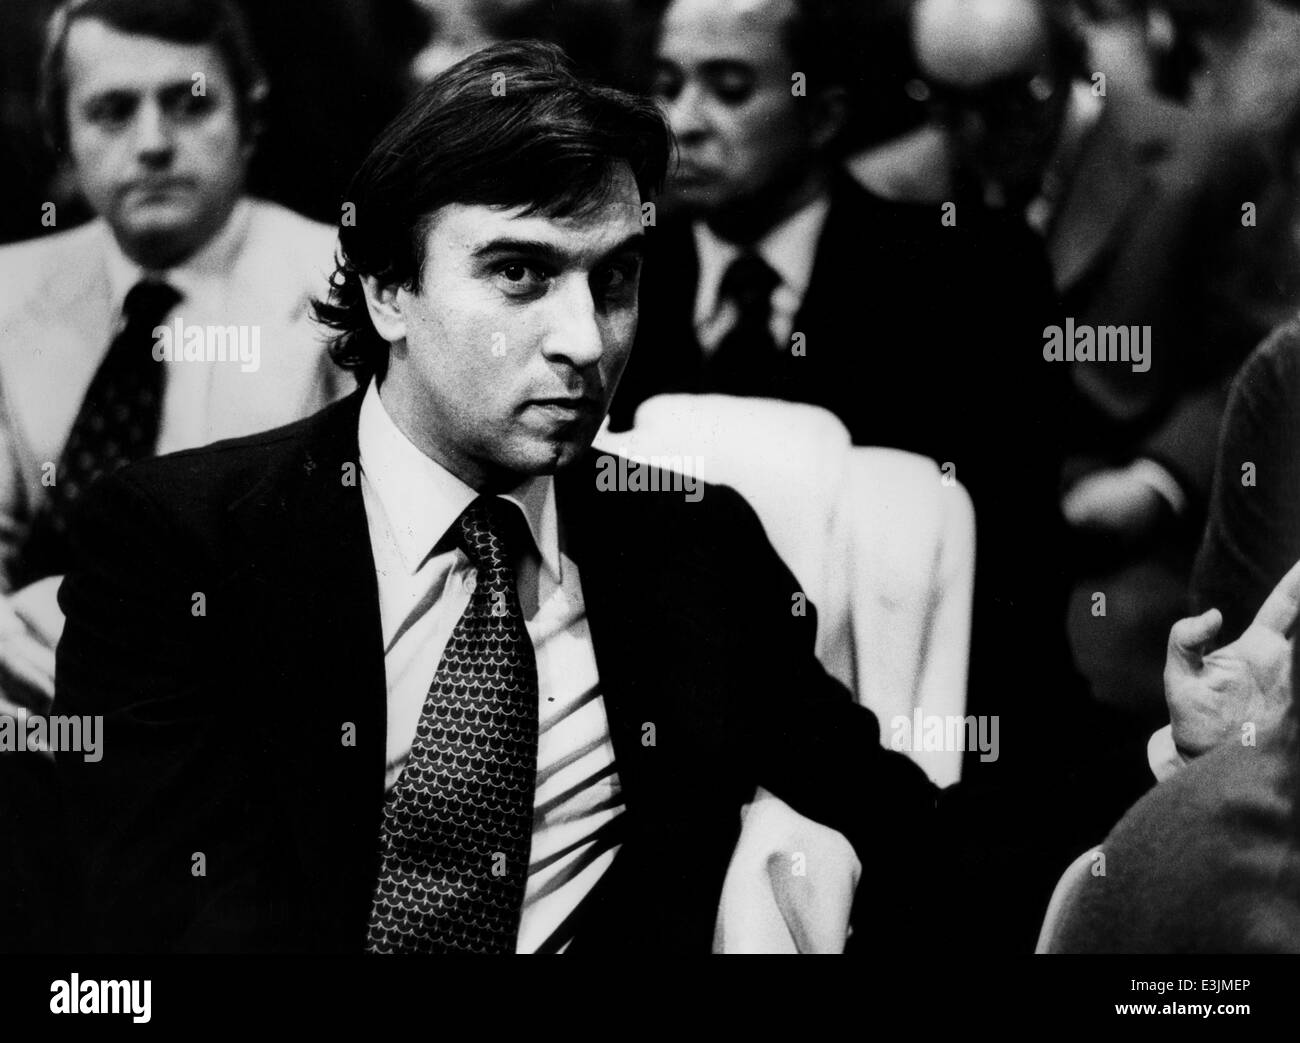 Claudio Abbado High Resolution Stock Photography and Images - Alamy